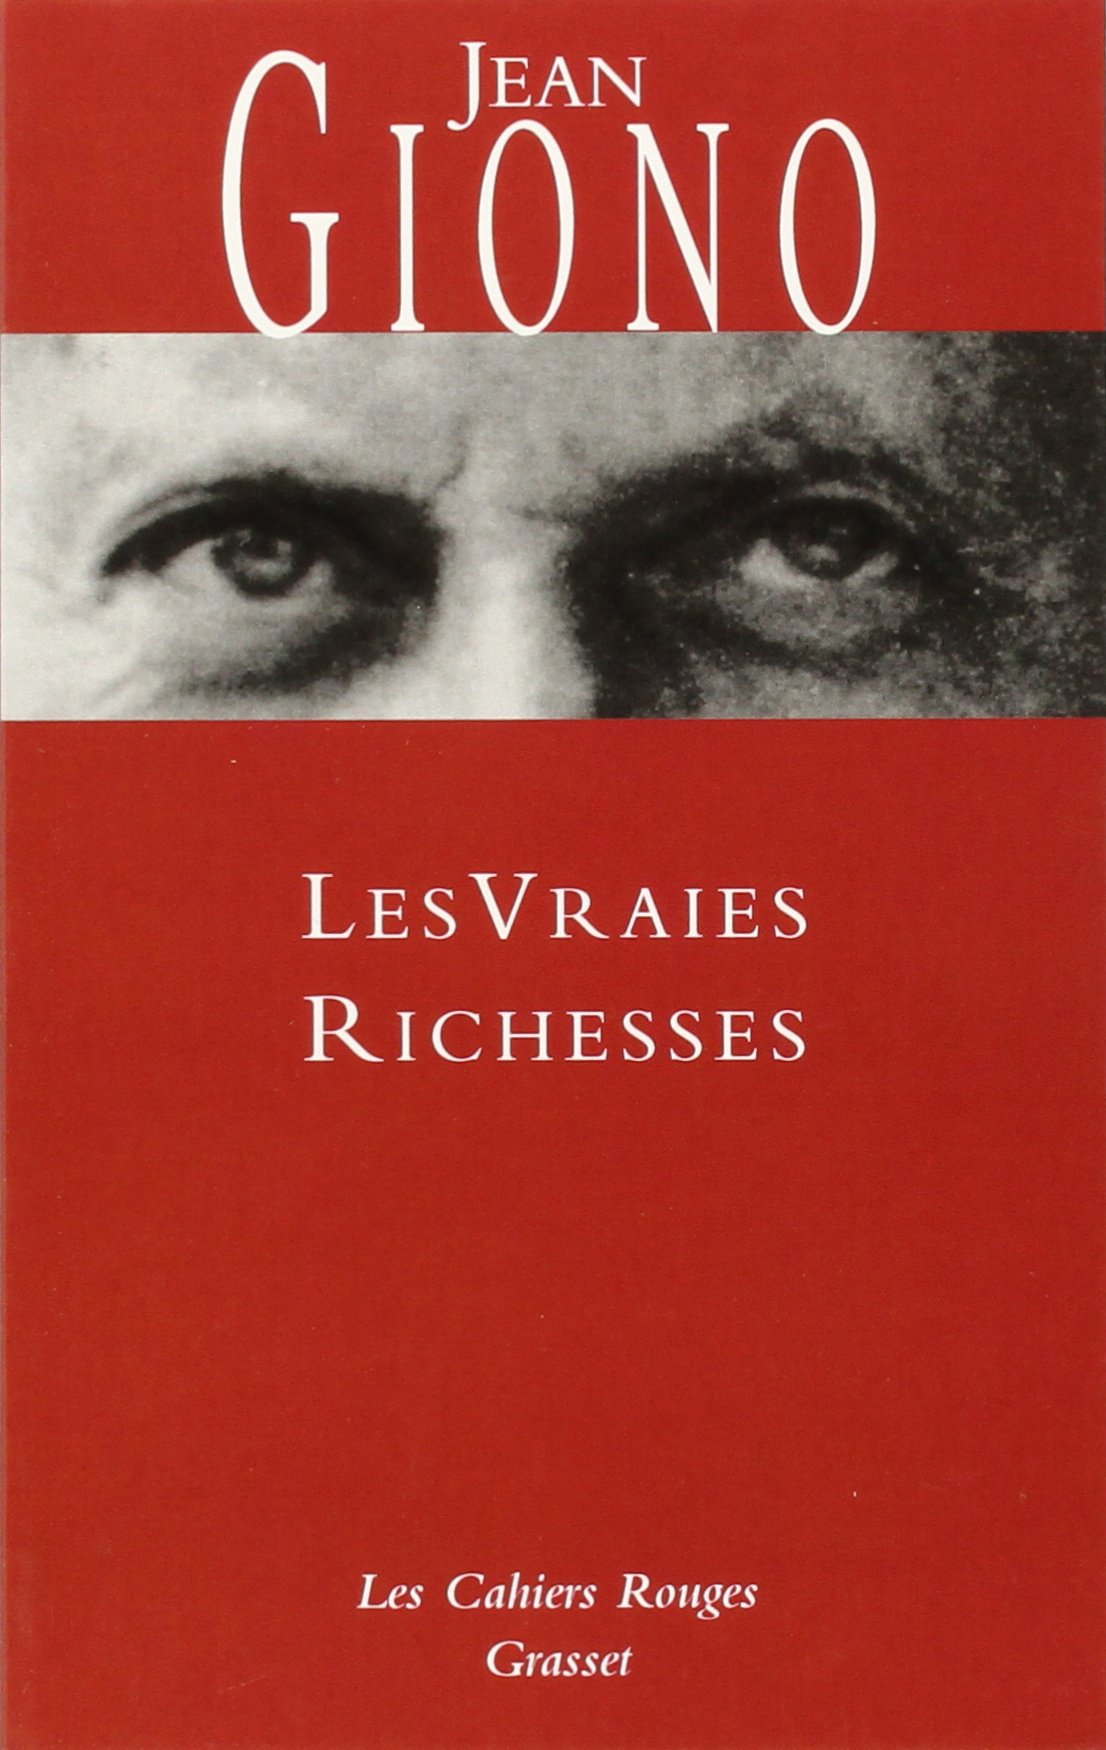 Amazon.fr - Les Vraies Richesses - Jean Giono - Livres 45872b4b6bee